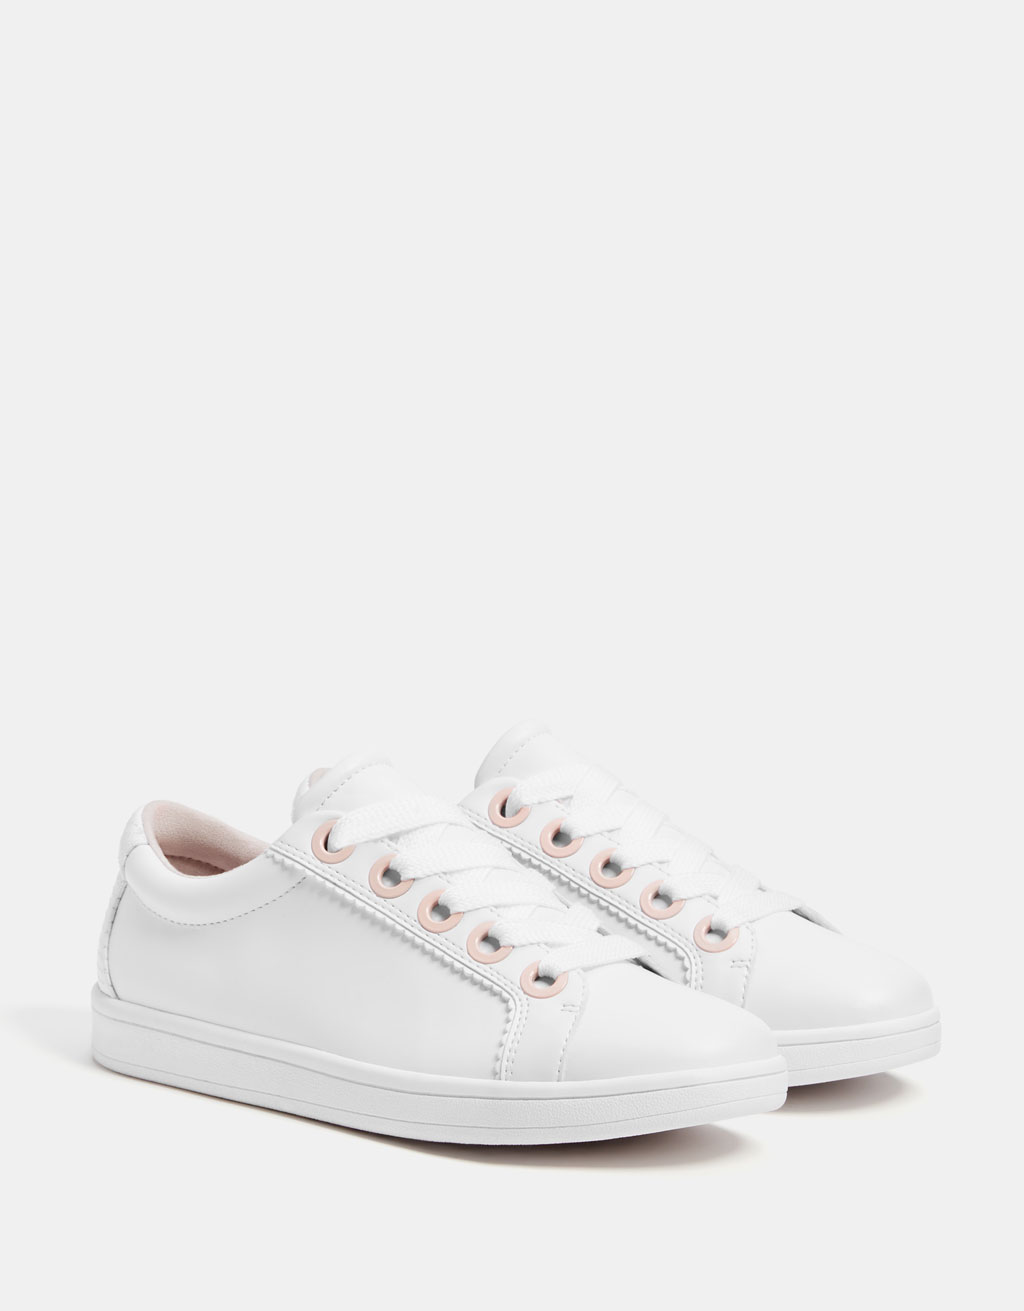 White sneakers with scalloped detailing